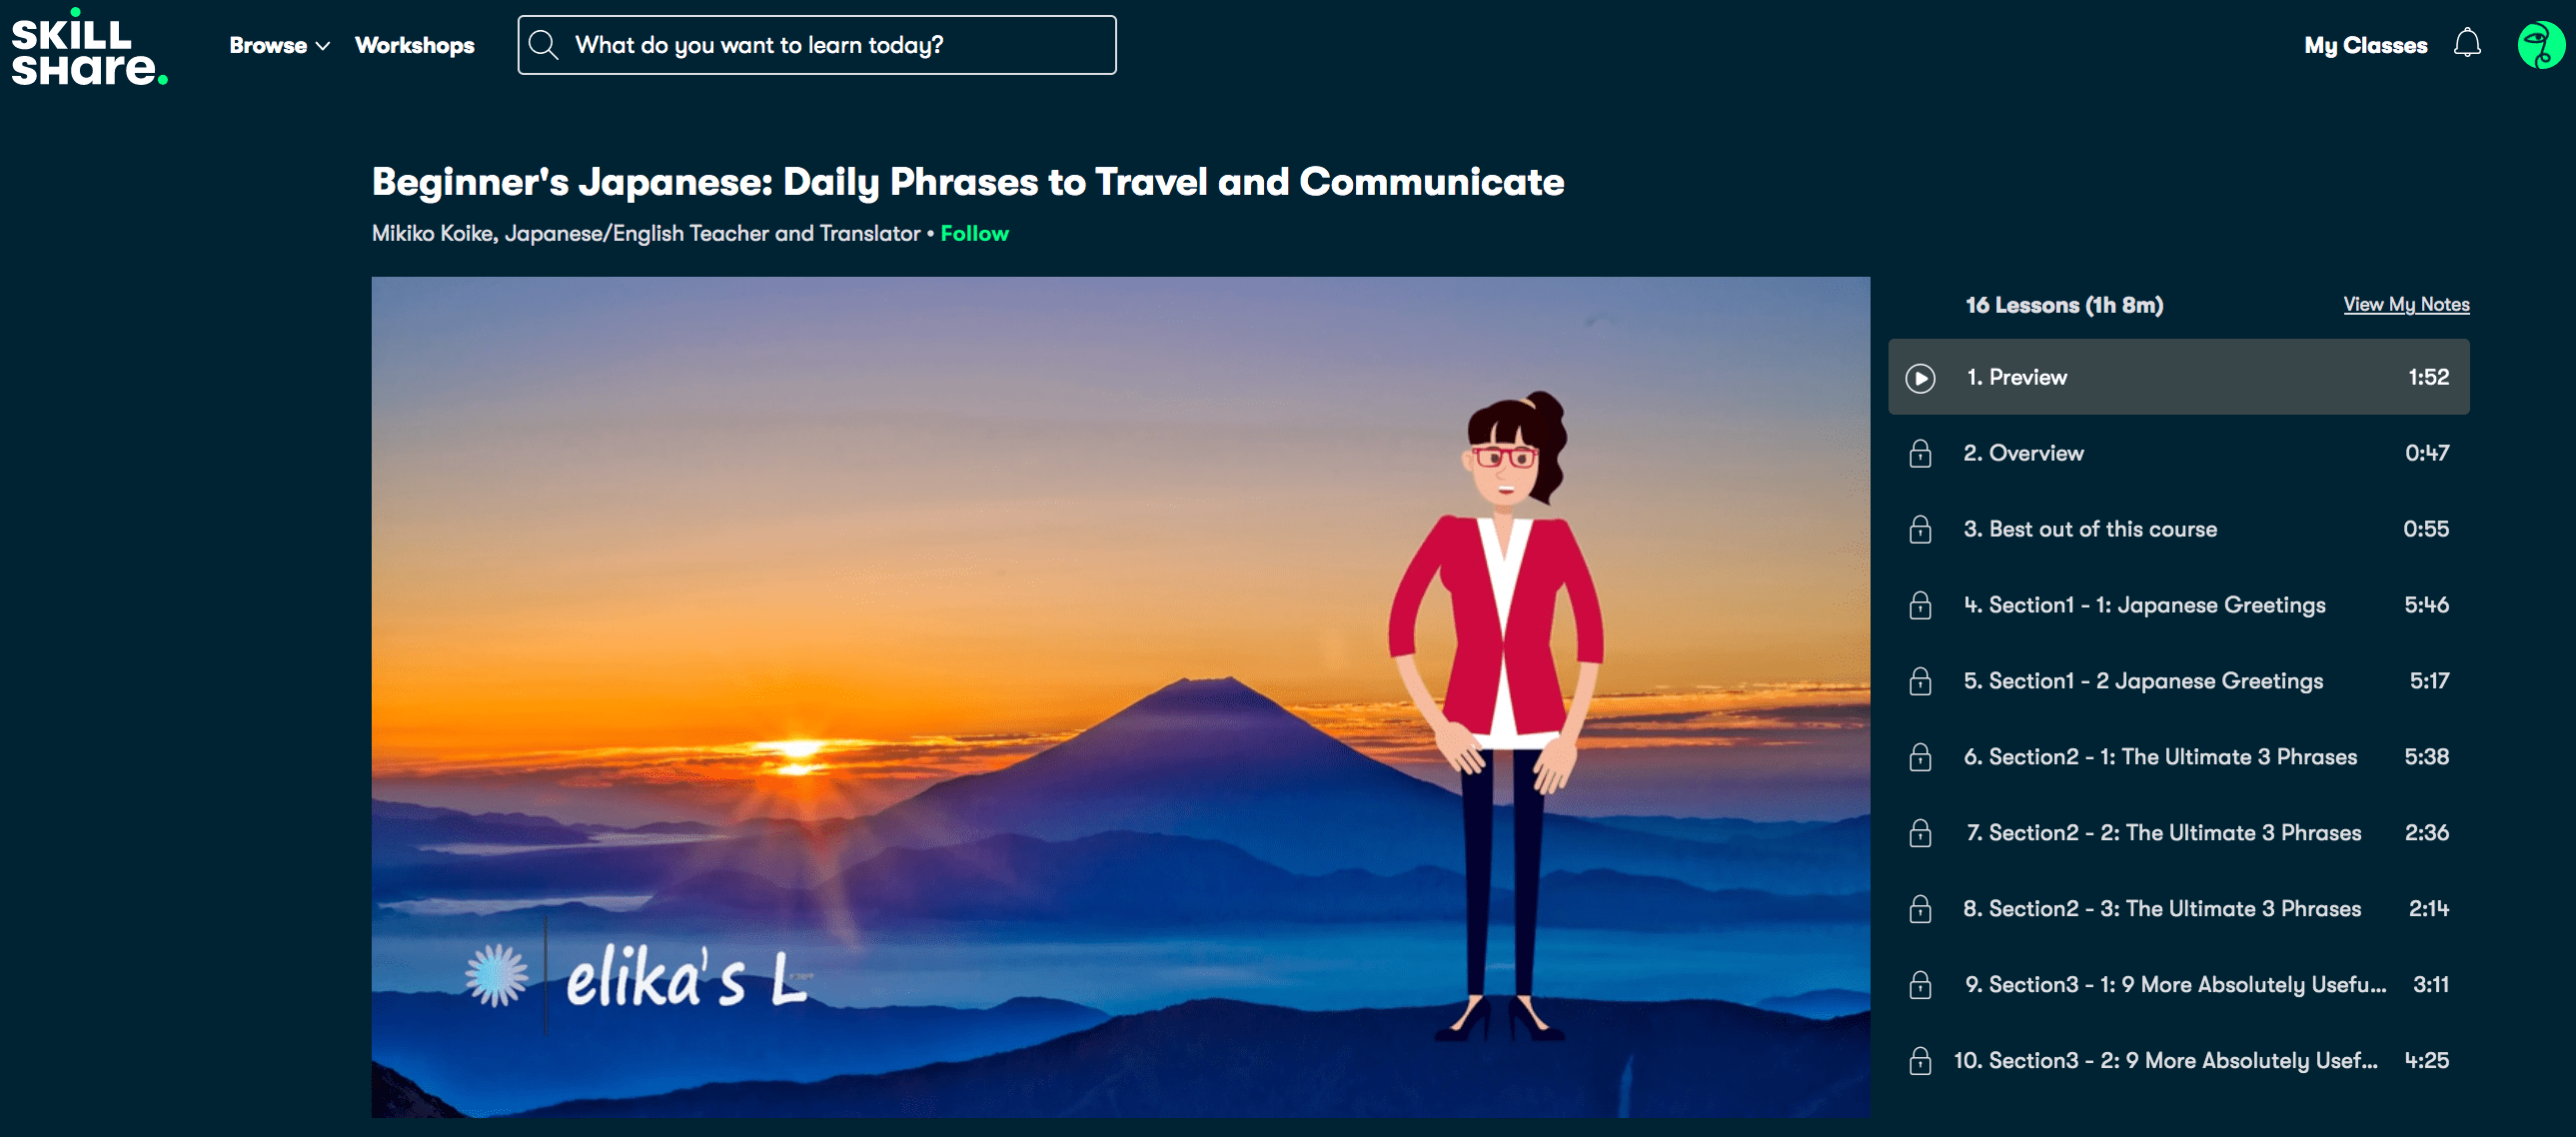 Beginner-s-Japanese-Daily-Phrases-to-Travel-and-Communicate-Mikiko-Koike-Skillshare